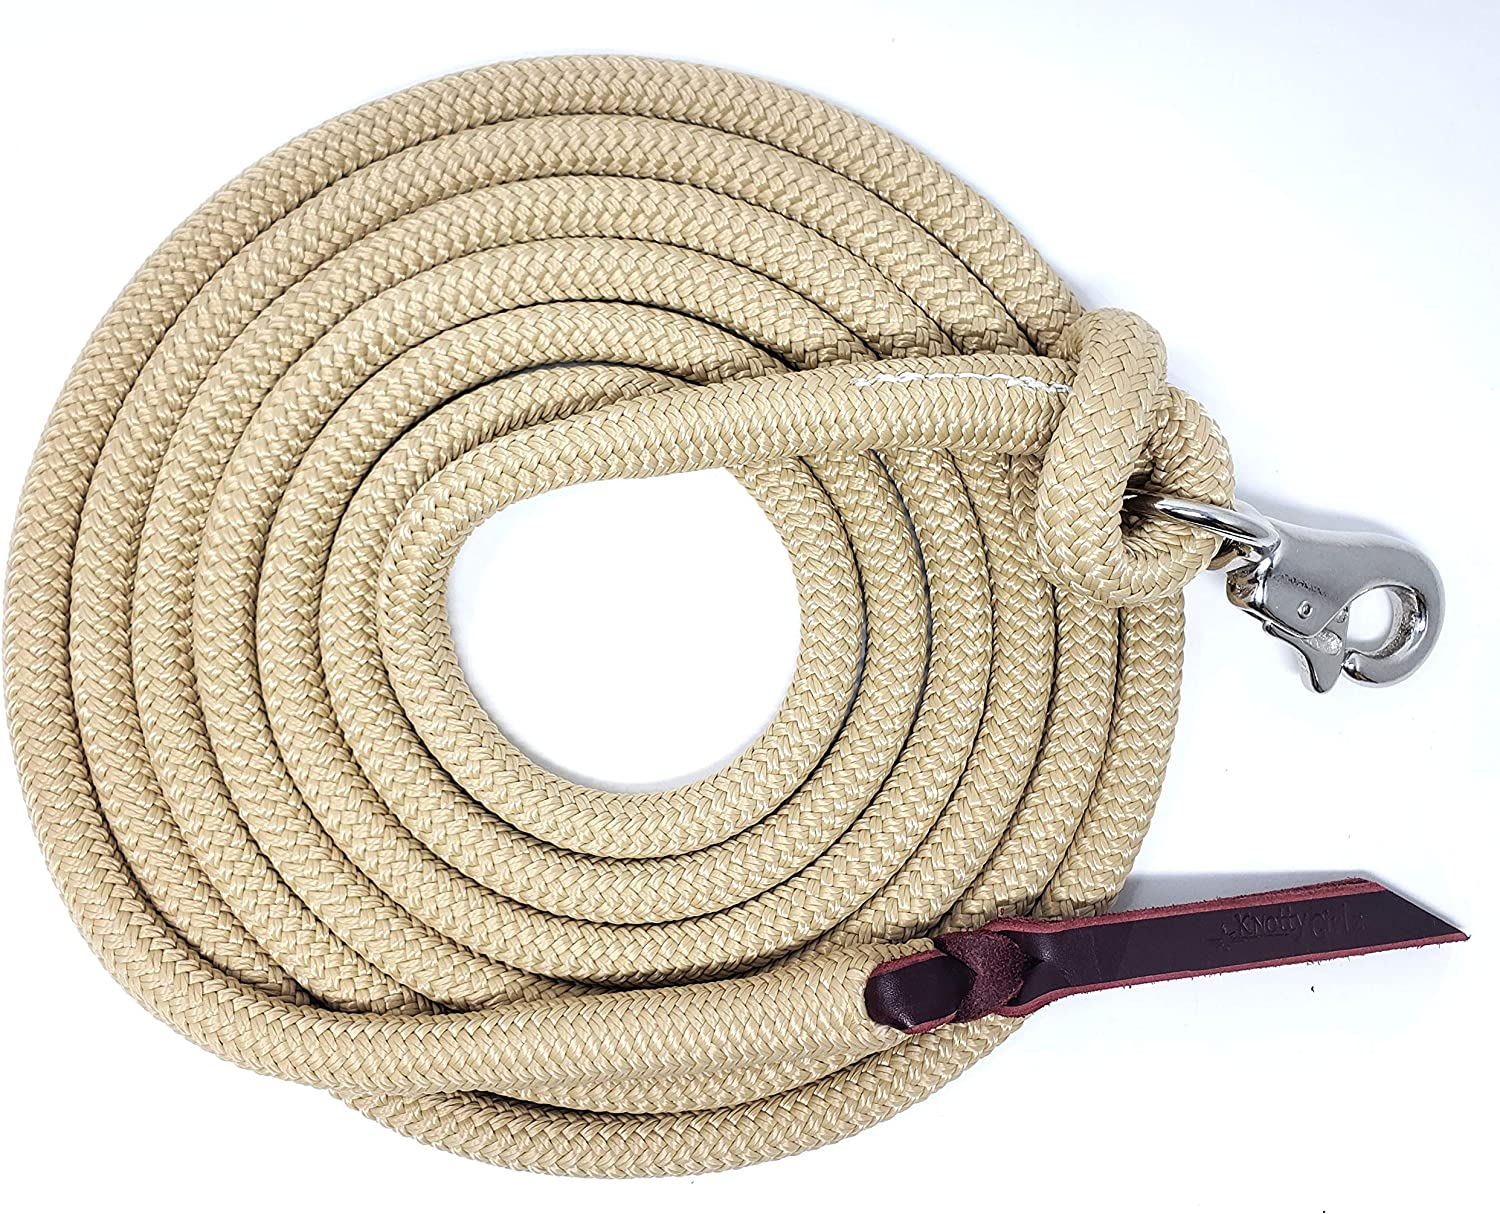 13/' Nautical Antique Barn Ranch Garden Stable Rope Block Tackle Rope Horse Tack Lead Line Oiled Hemp Rope Boat Line Braided Rope